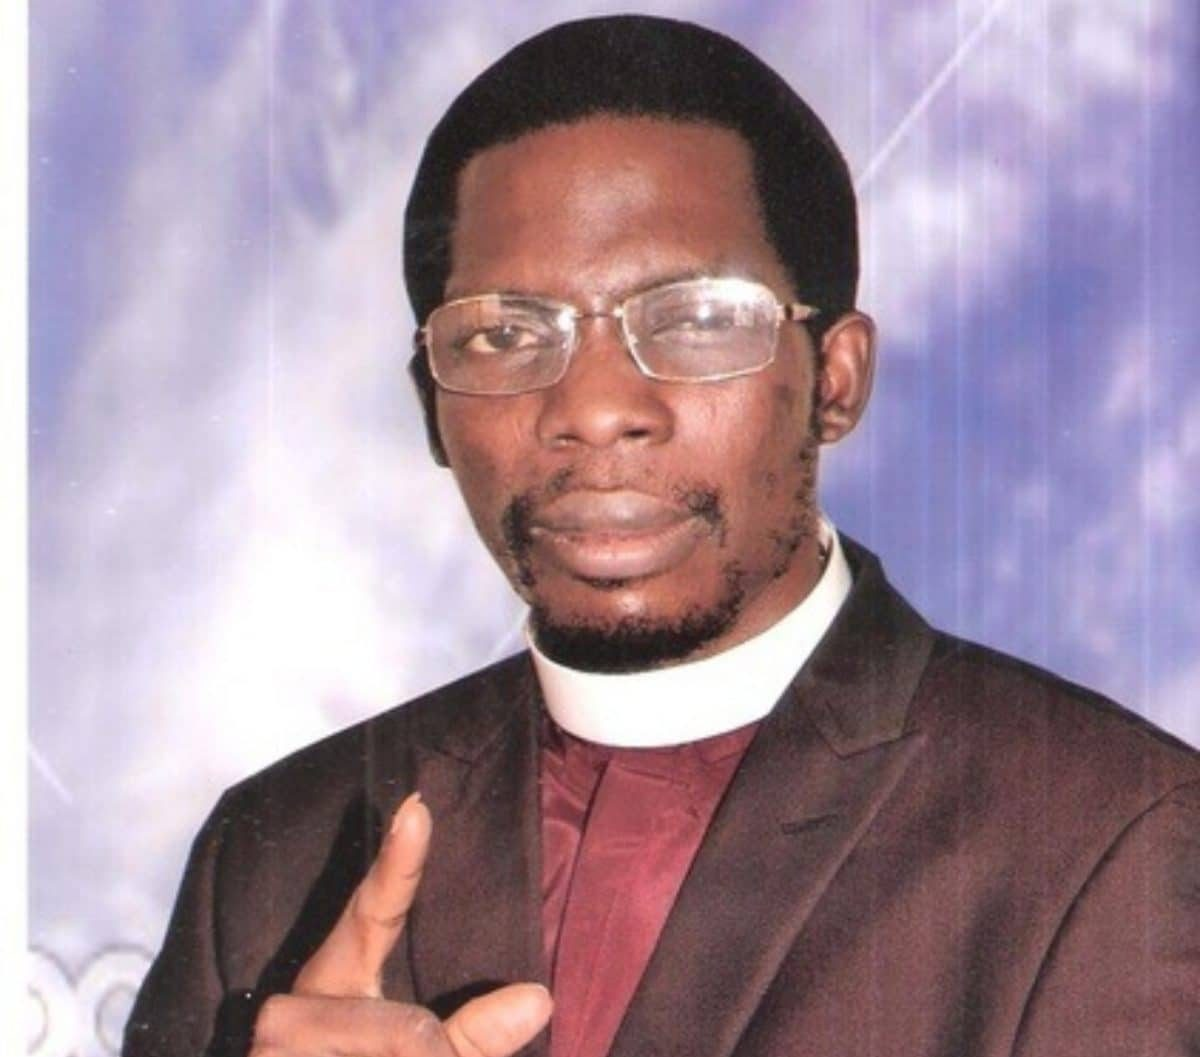 President will die, Disease dangerous than COVID-19 will emerge, politicians will assassinate each other – Apostle Okikijesu